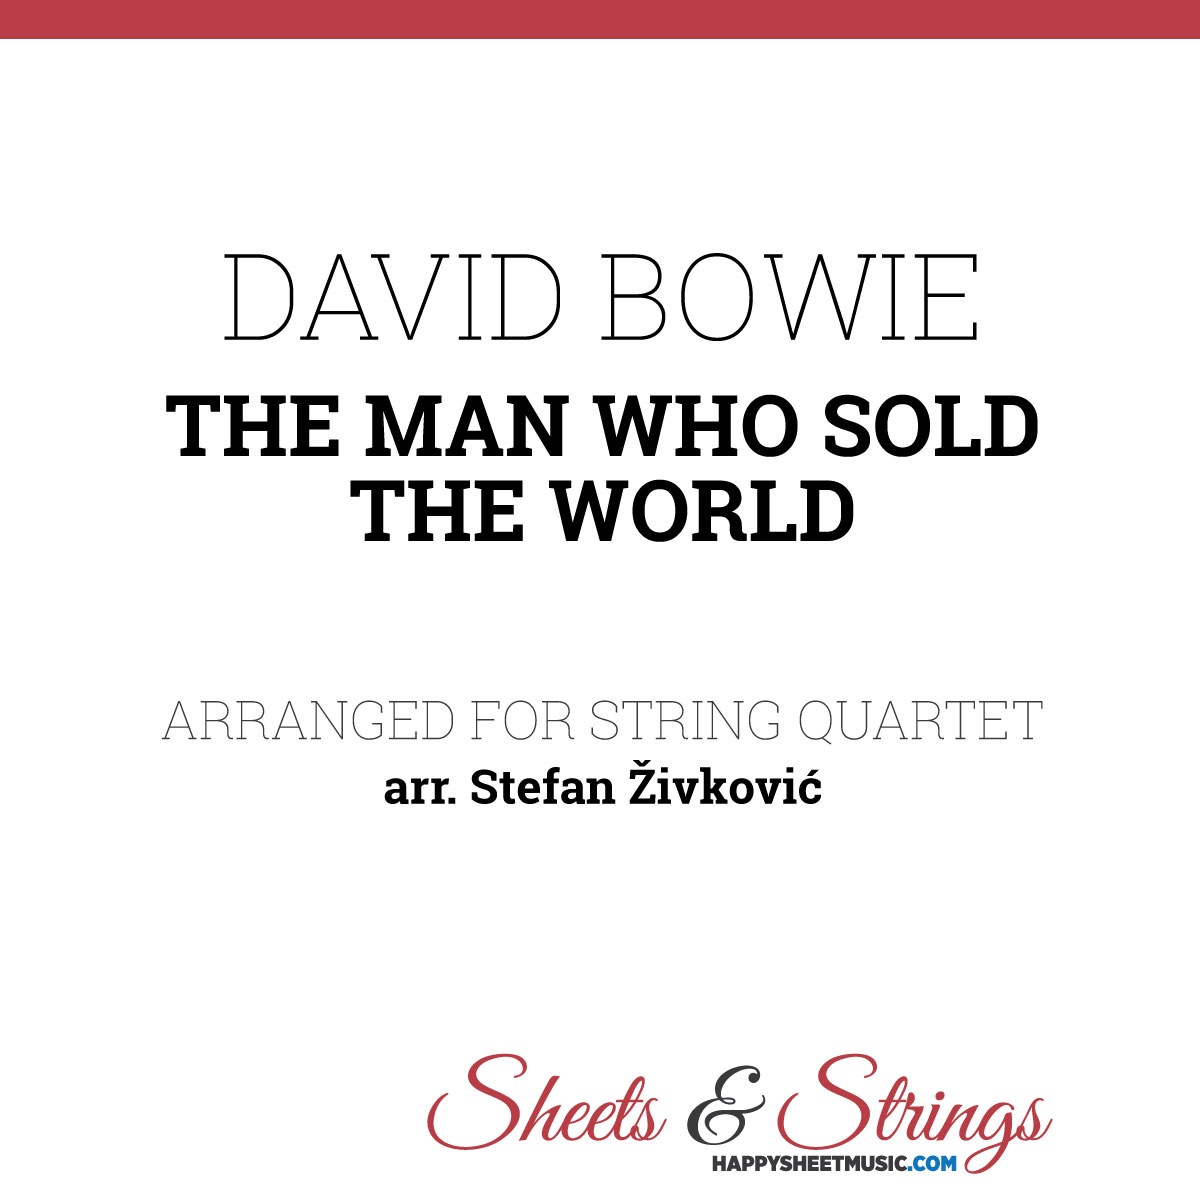 David Bowie - The Man Who Sold the World Sheet Music for ...